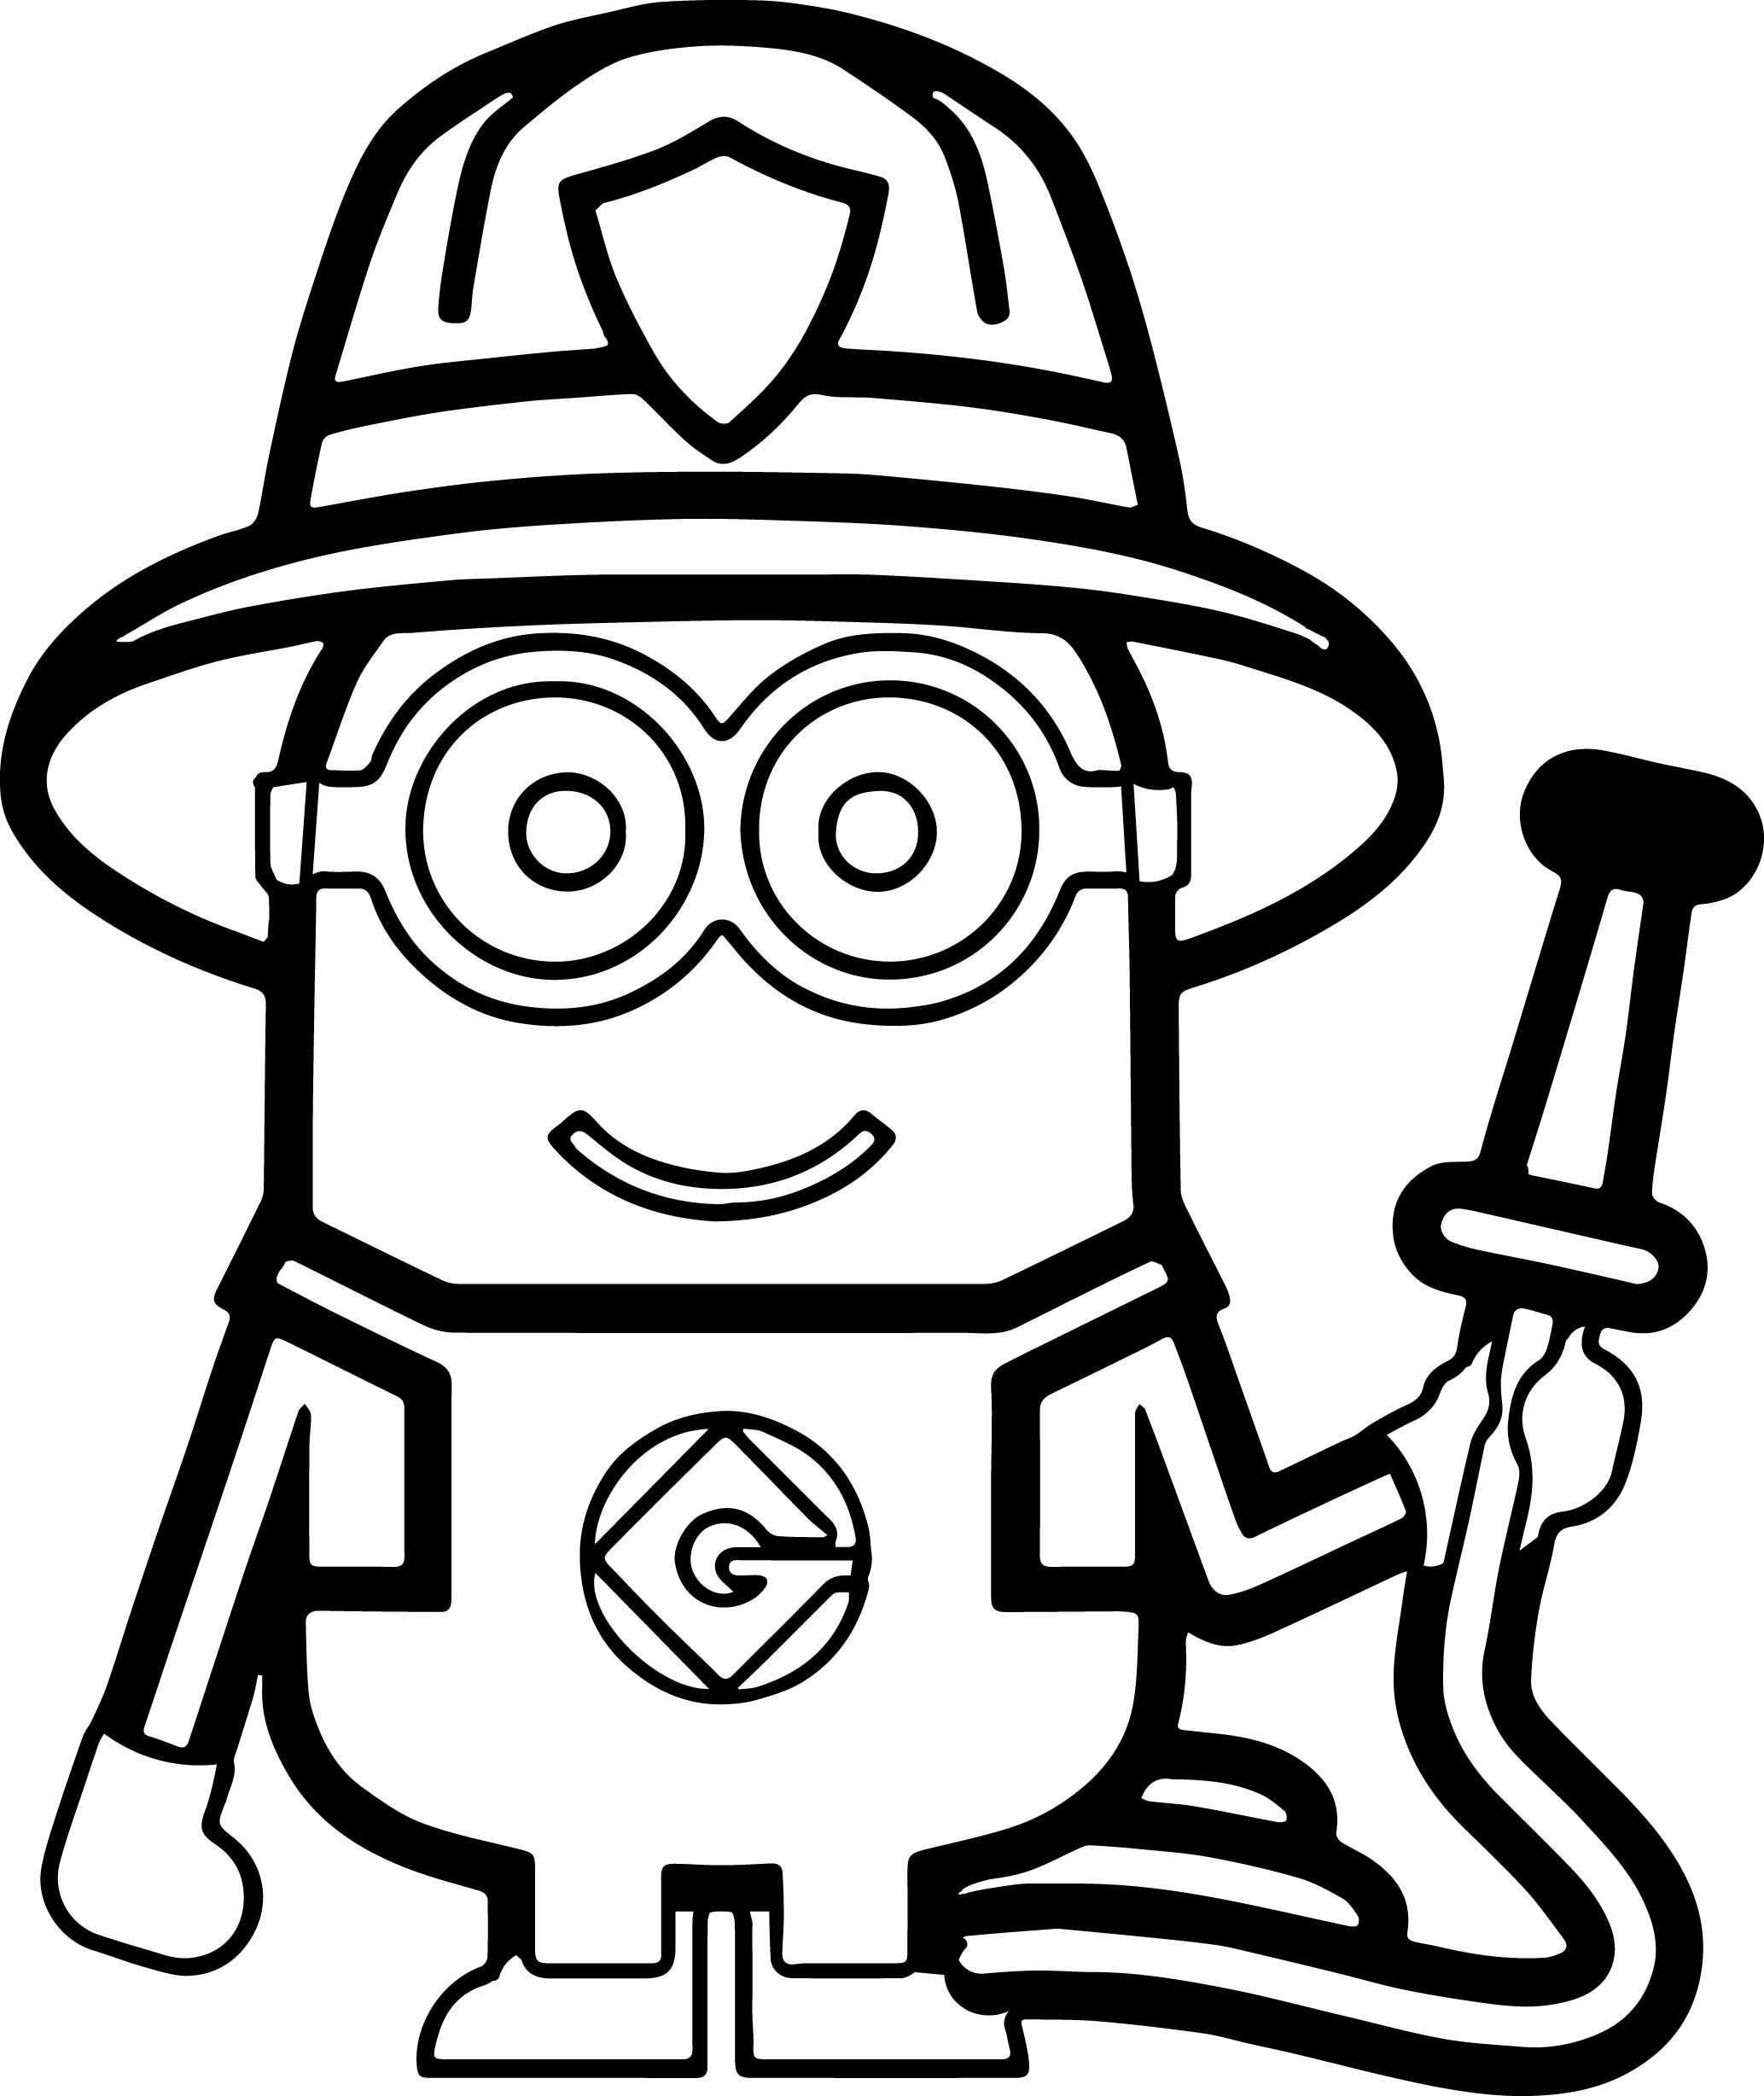 Minions Fireman Coloring Page✖️More Pins Like This e At FOSTERGINGER Pinterest✖️